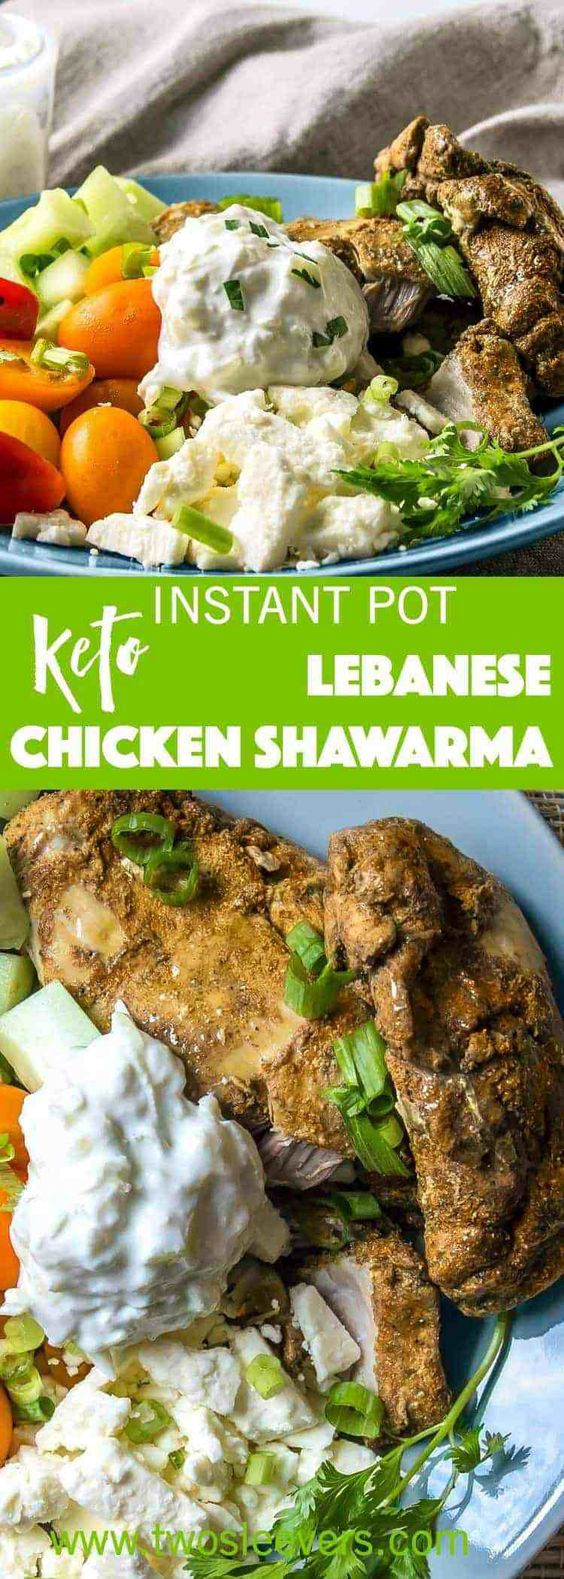 Keto/Low Carb Chicken Shawarma